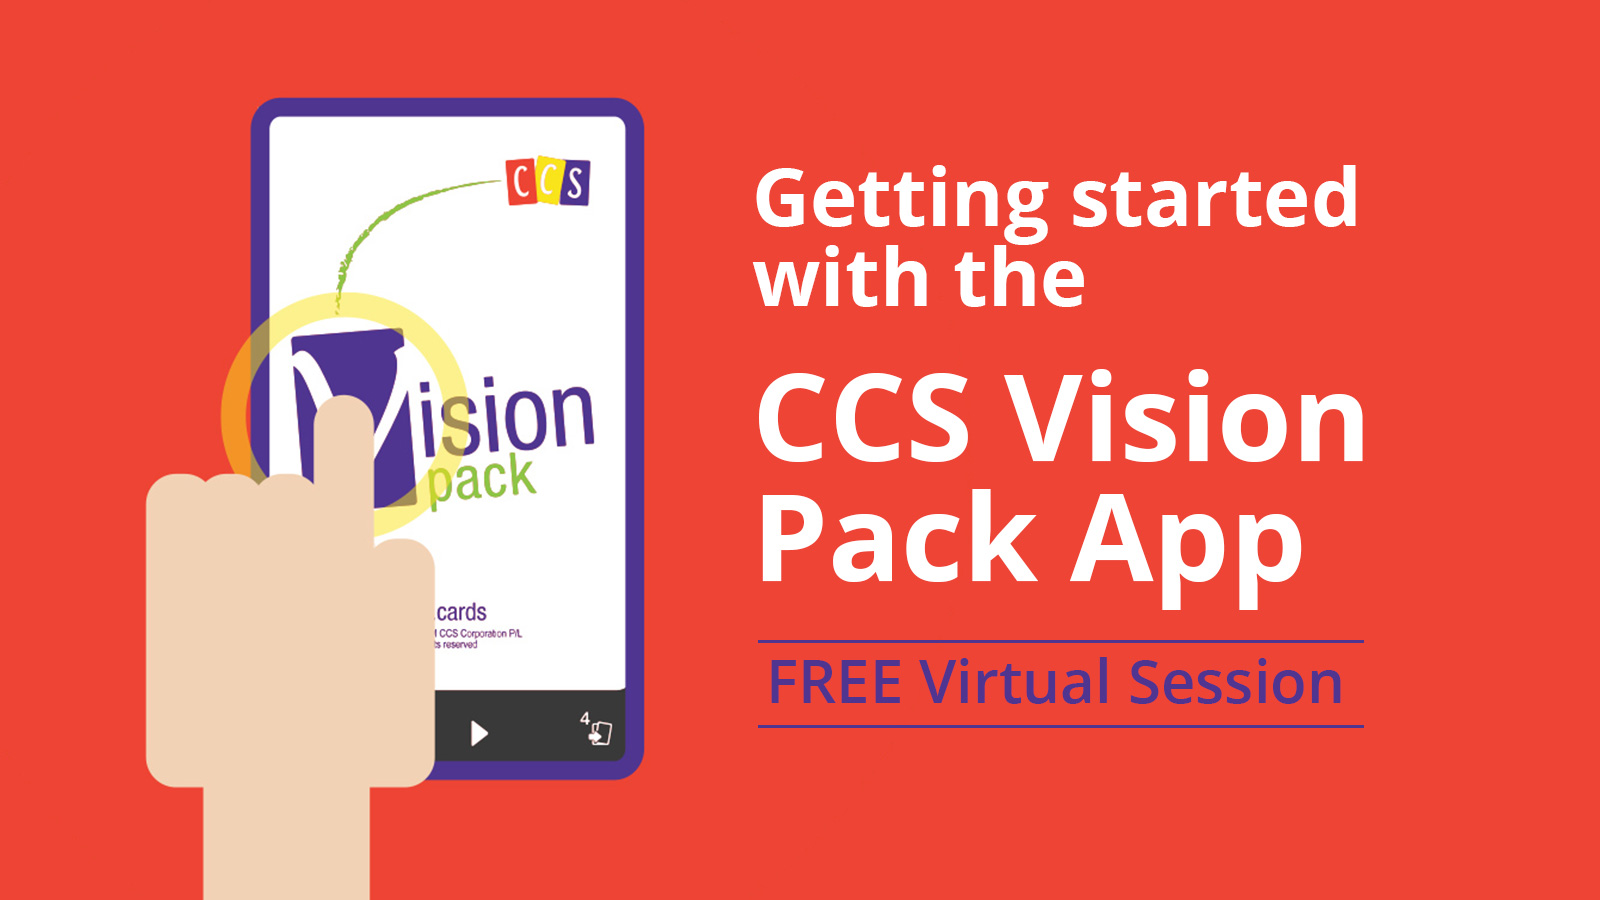 Event banner - Getting started with the CCS Vision Pack App